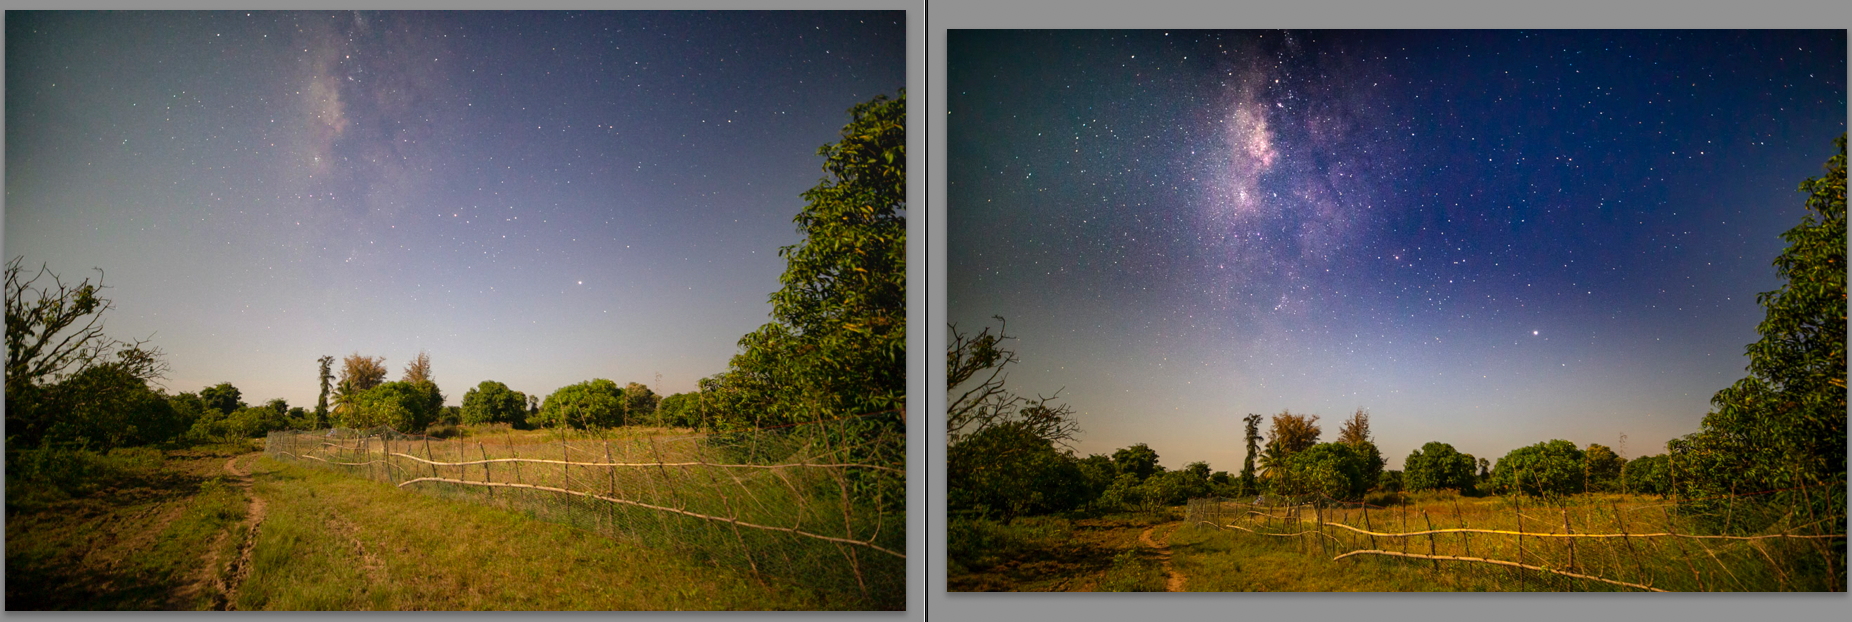 Extracting detail from a photo of the Milky Way